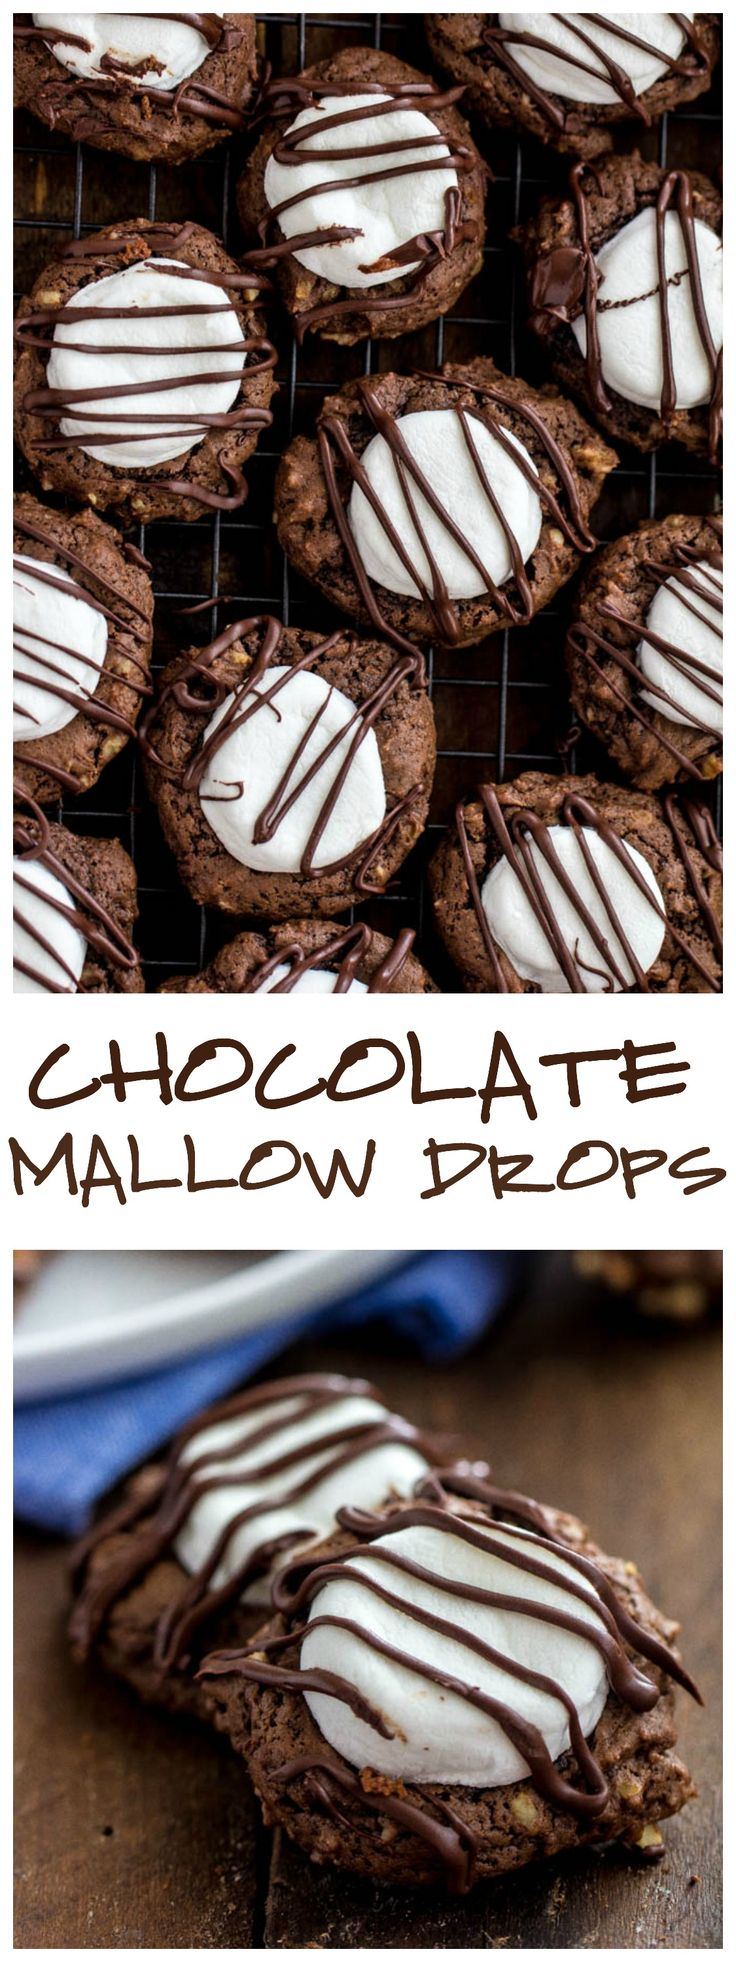 Chocolate Mallow drops are delicious fudgy cookies with a marshmallow center and drizzled in chocolate! YUM!